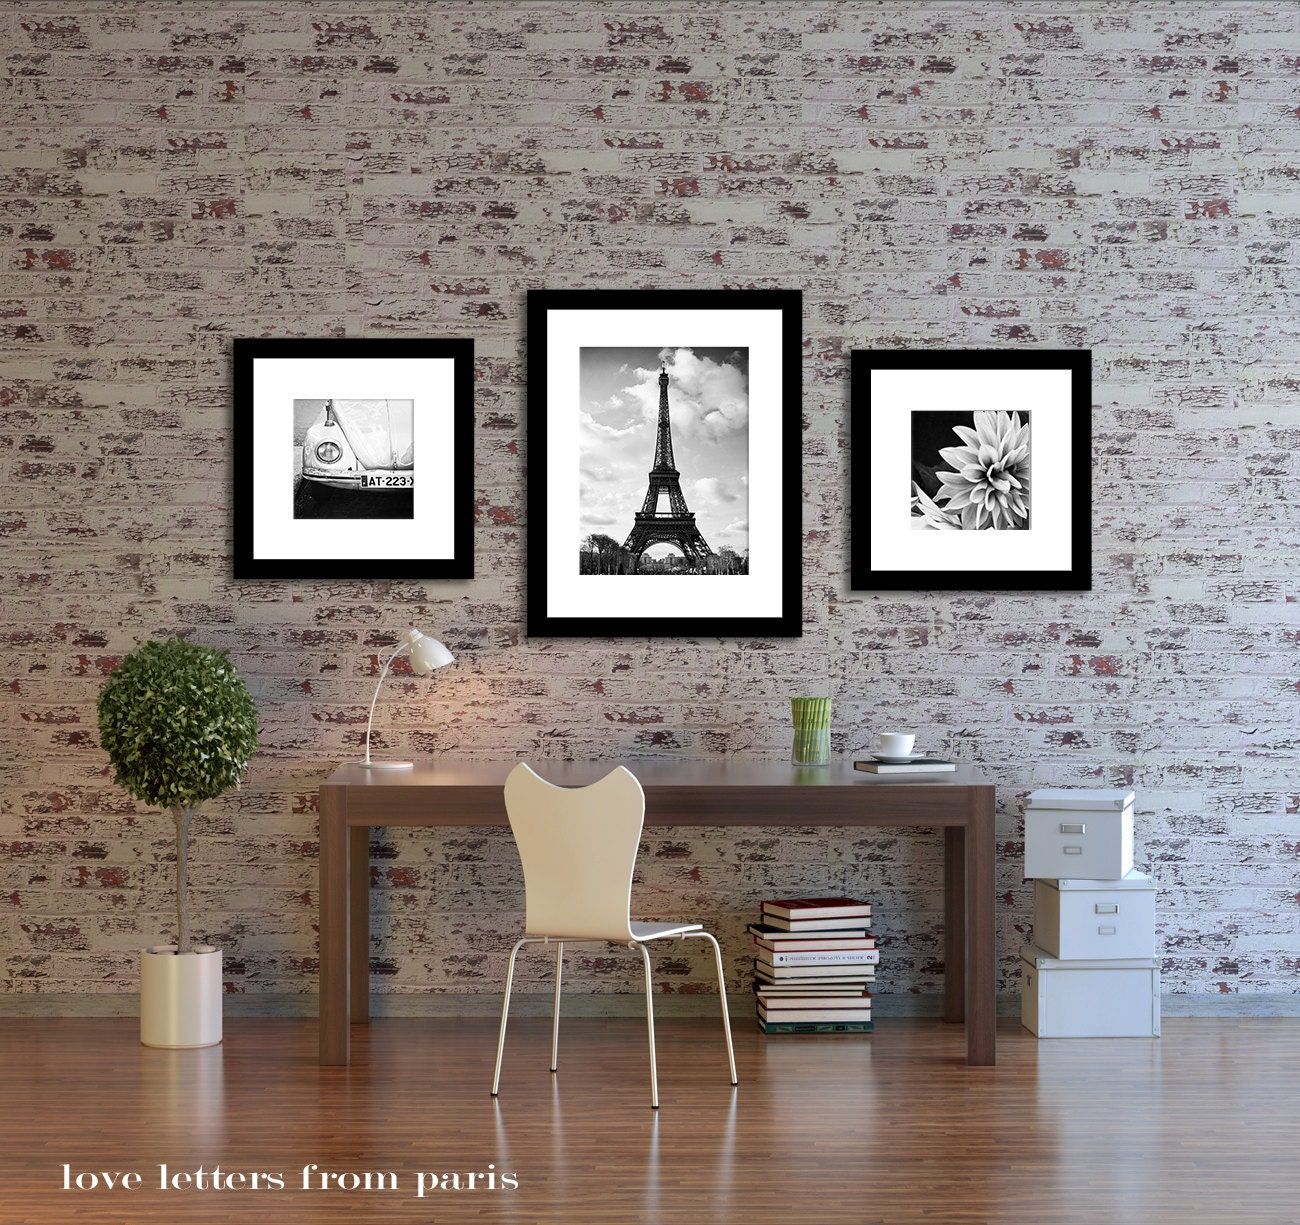 Paris photograph home decor paris wall art paris by for Home decor wall hanging